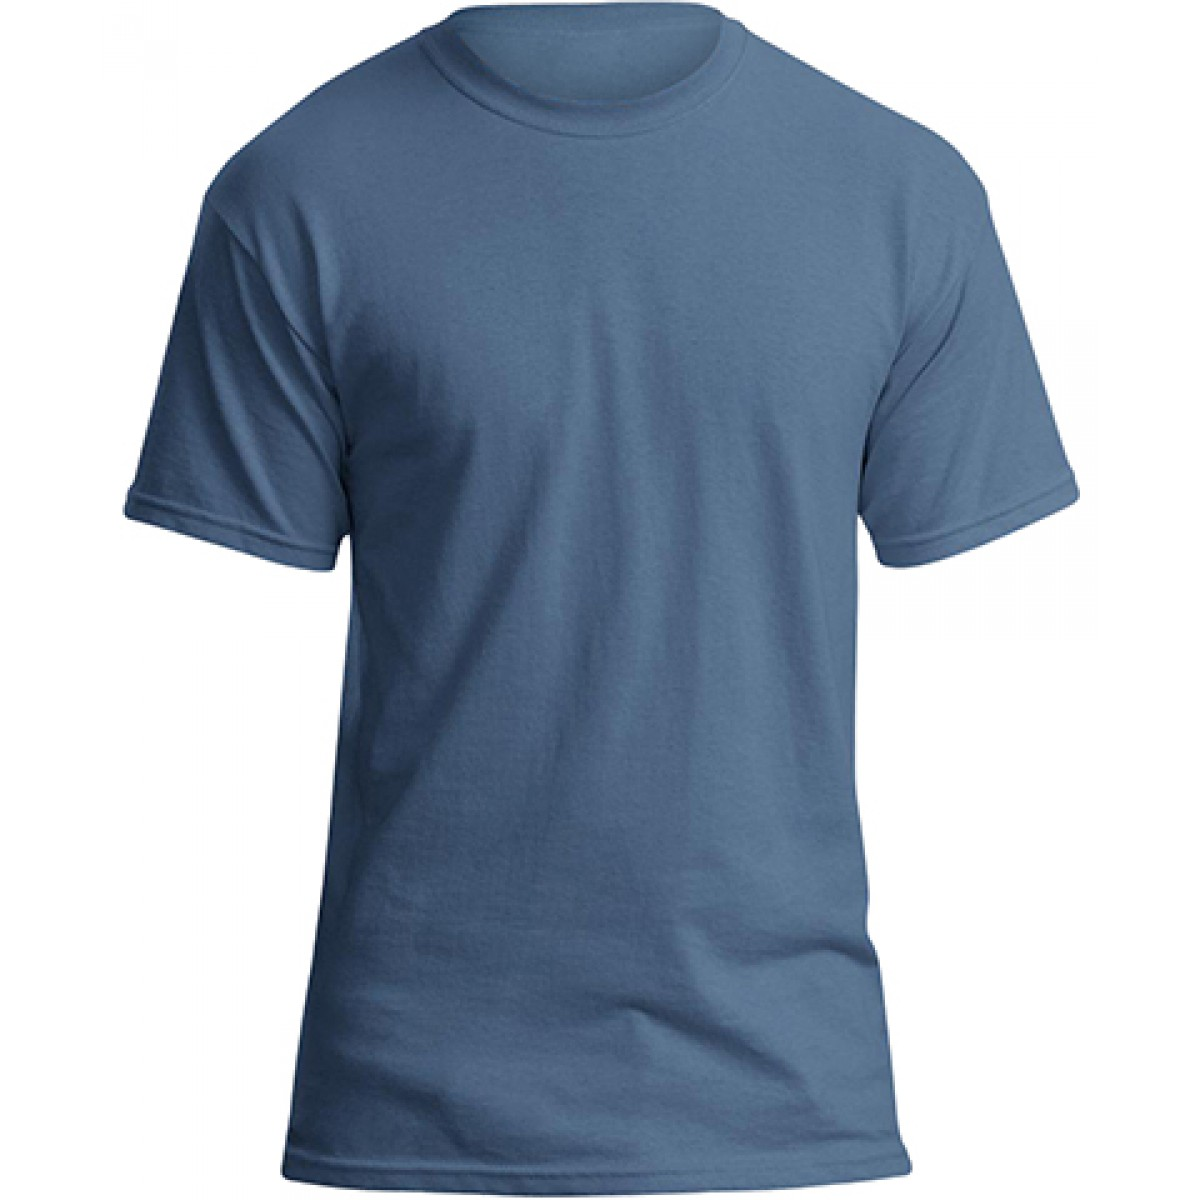 Soft 100% Cotton T-Shirt-Indigo Blue-L